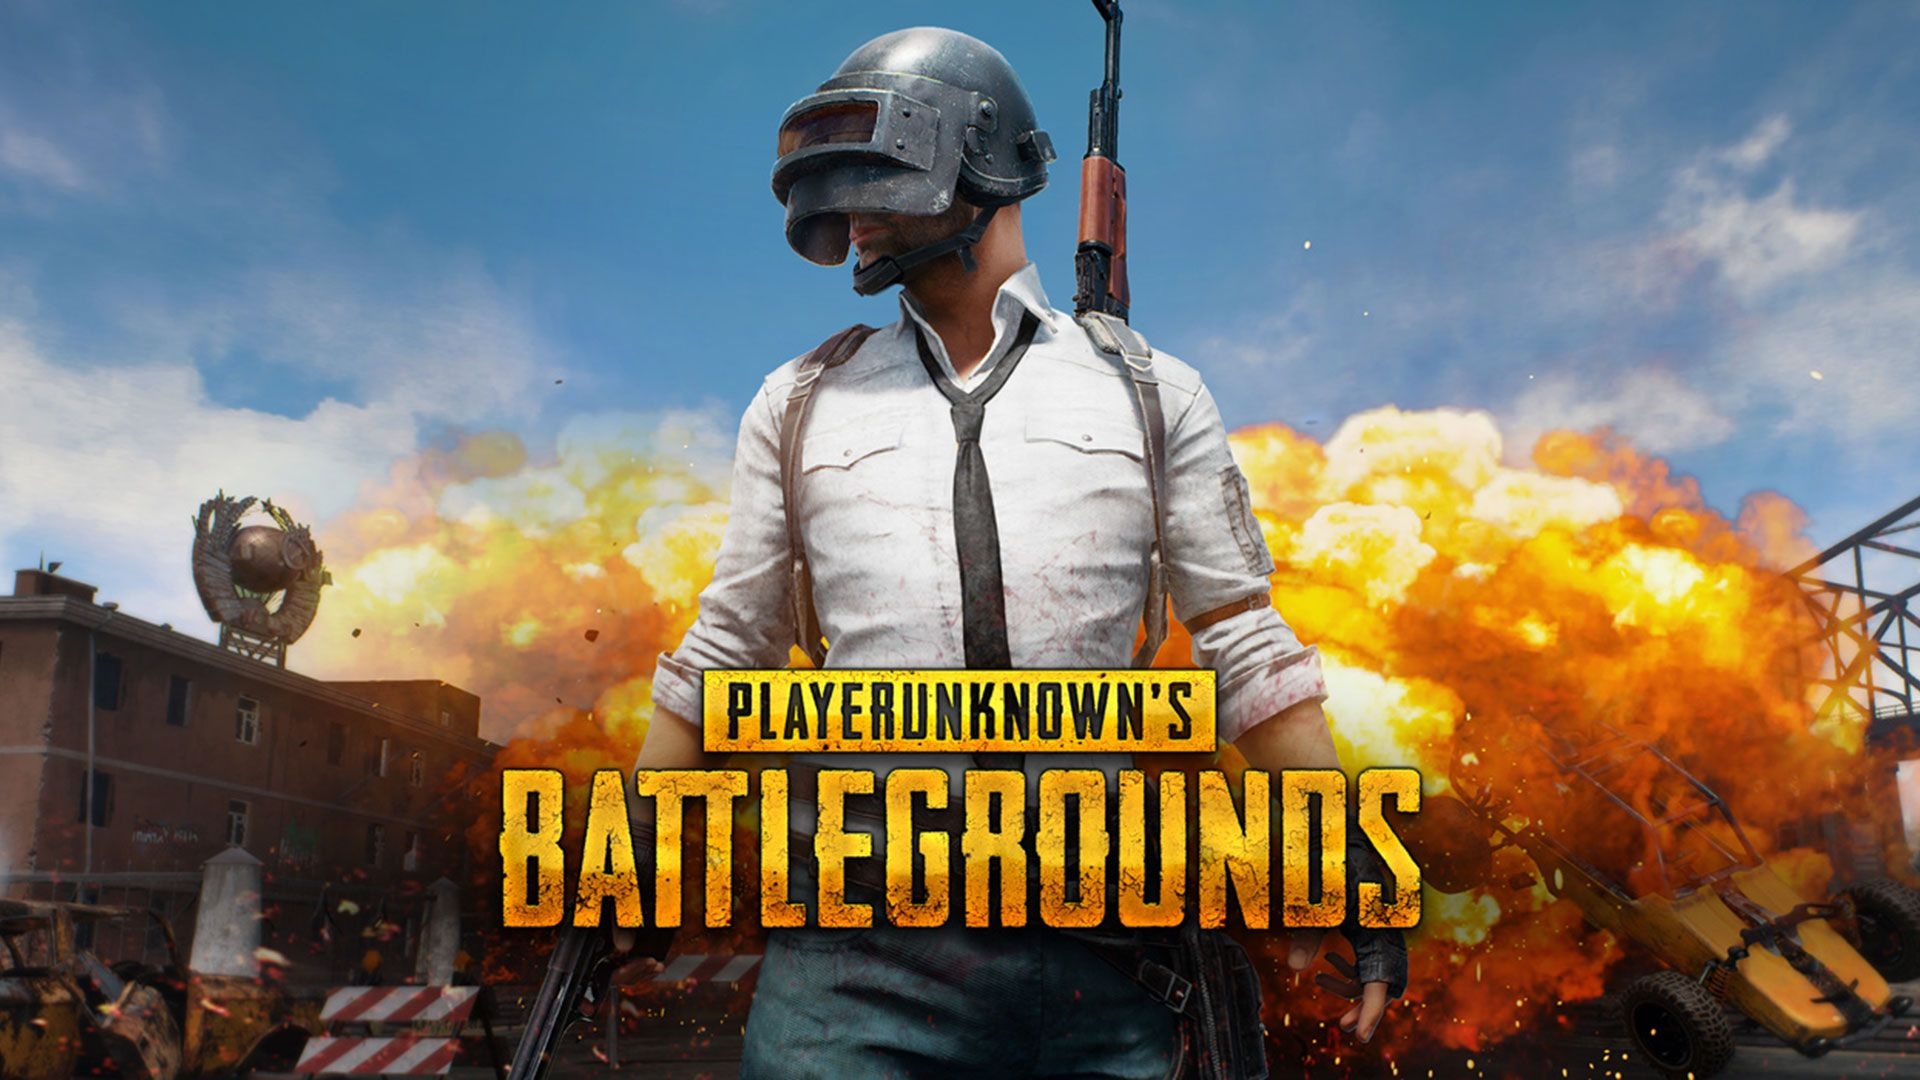 Pubg Hd Wallpaper: Pubg Wallpapers Full Hd On Wallpaper 1080p HD